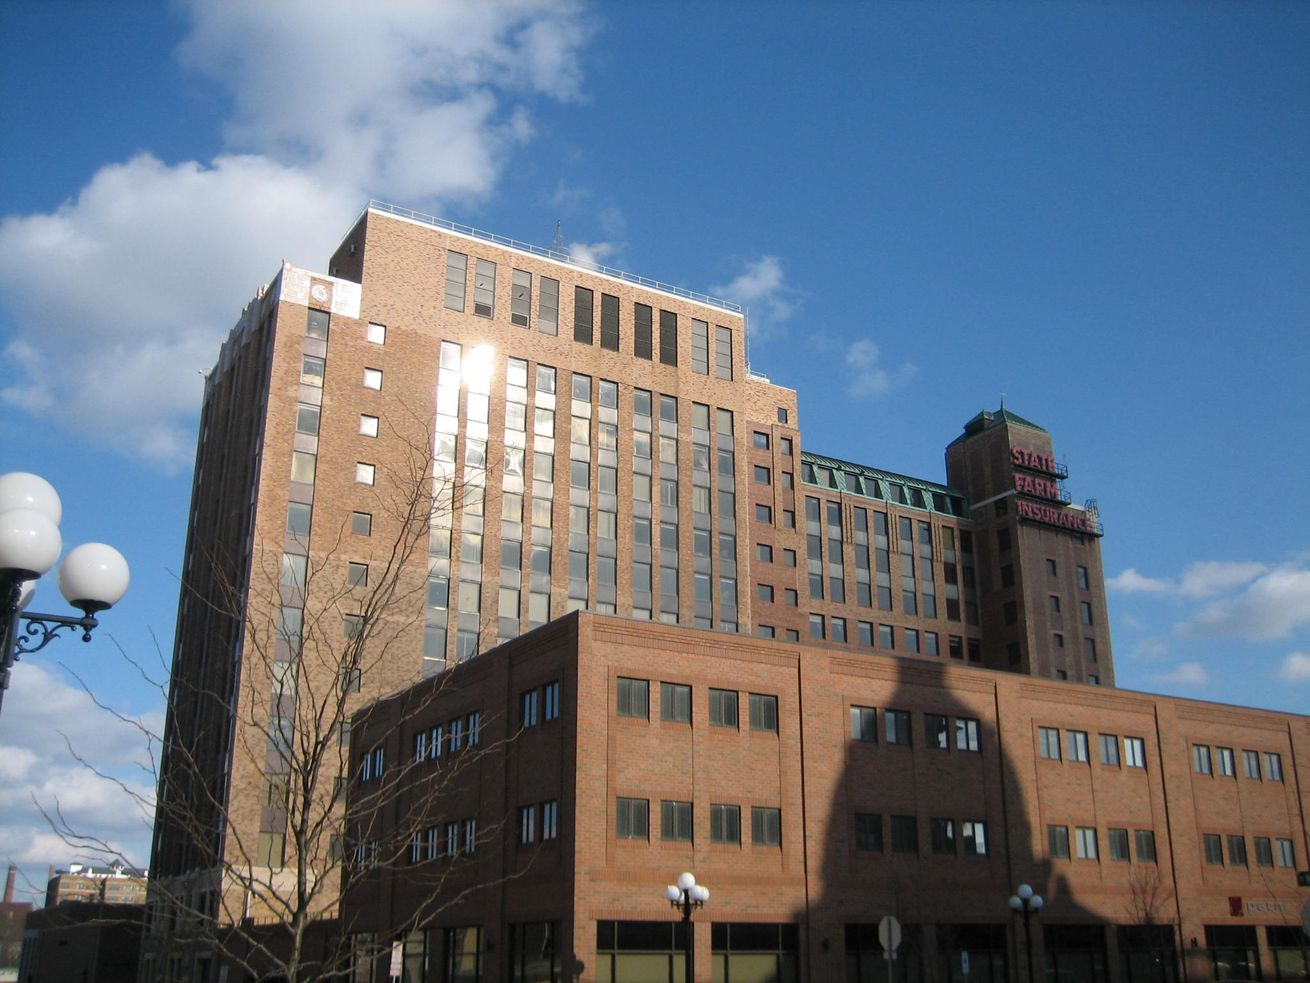 The State Farm insurance building, a brown Art Deco structure, in Bloomington, Indiana.